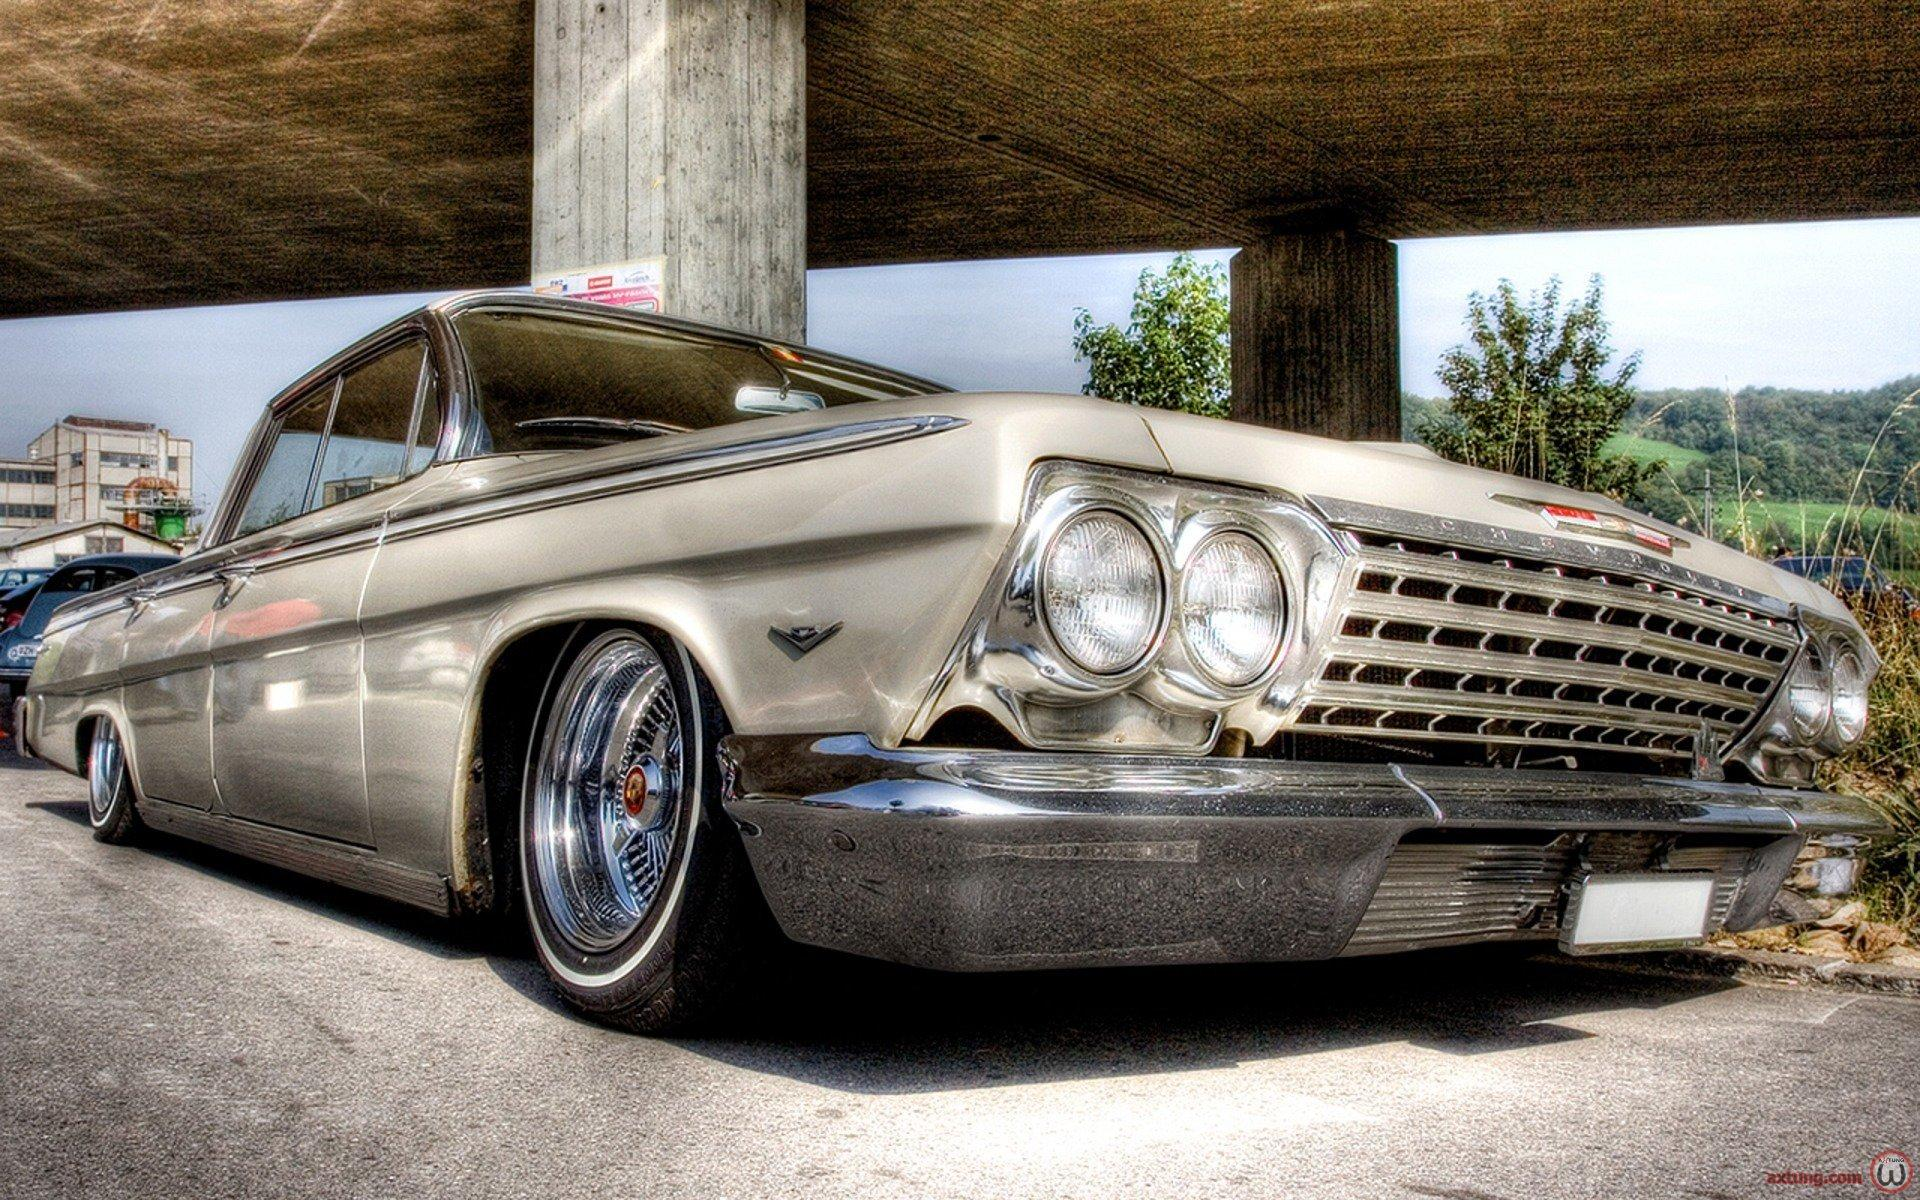 Lowrider Lowriders Custom Auto Car Cars Vehicle Vehicles